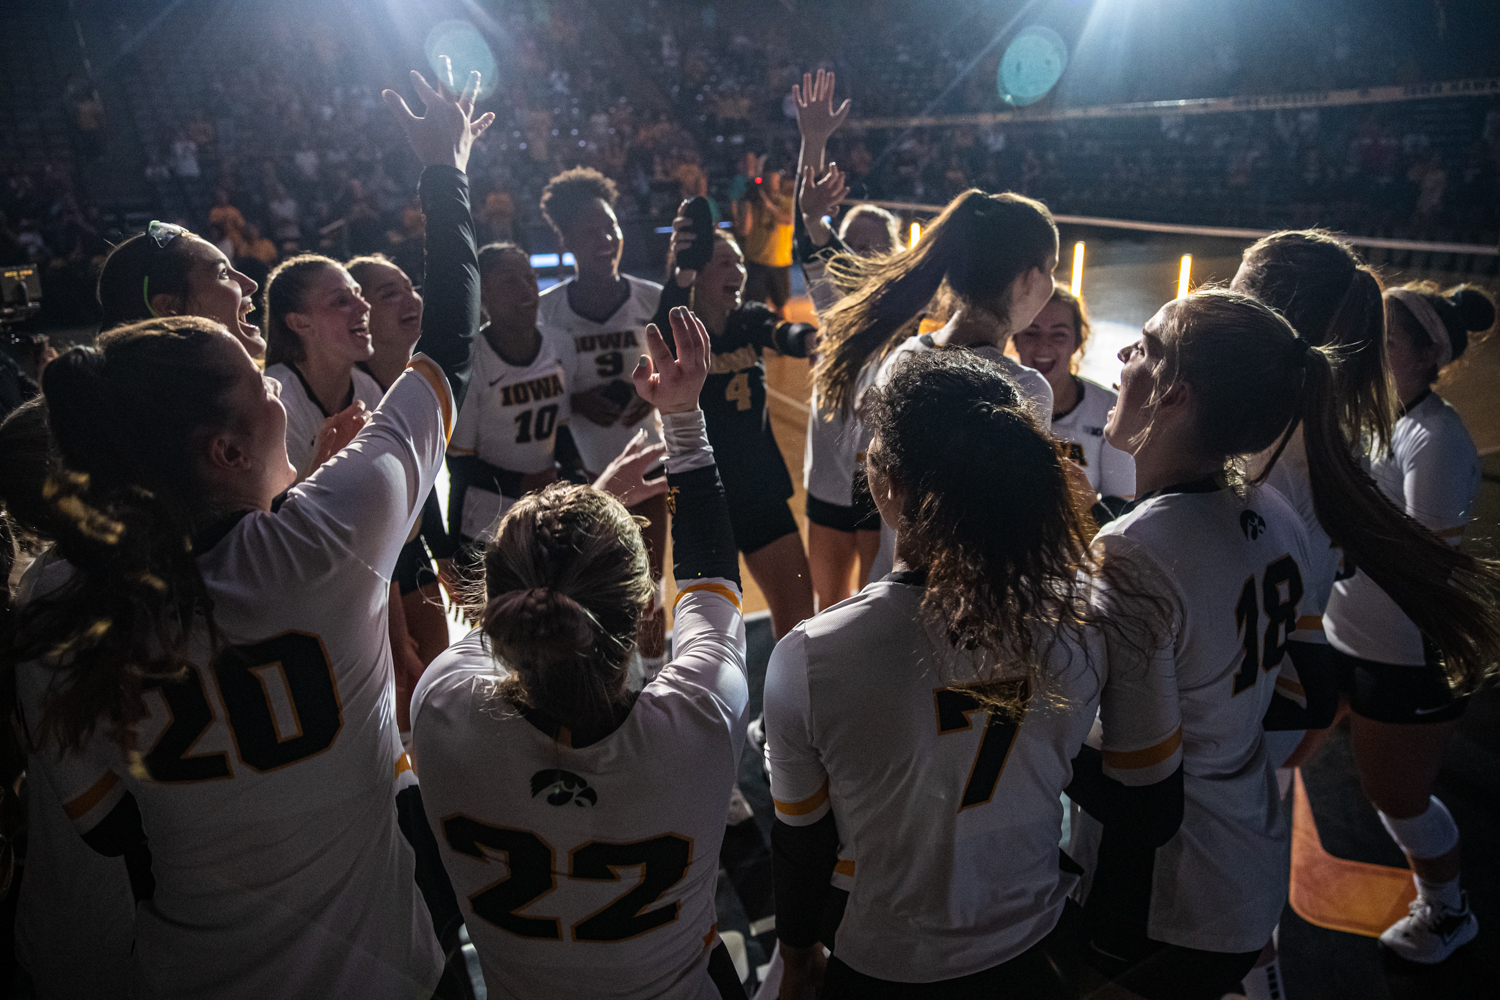 Iowa+players+are+introduced+during+a+volleyball+match+between+Iowa+and+Colorado+in+Carver-Hawkeye+Arena+on+Friday%2C+September+6%2C+2019.+The+Hawkeyes+dropped+their+season+opener+to+the+Buffaloes%2C+3-0.